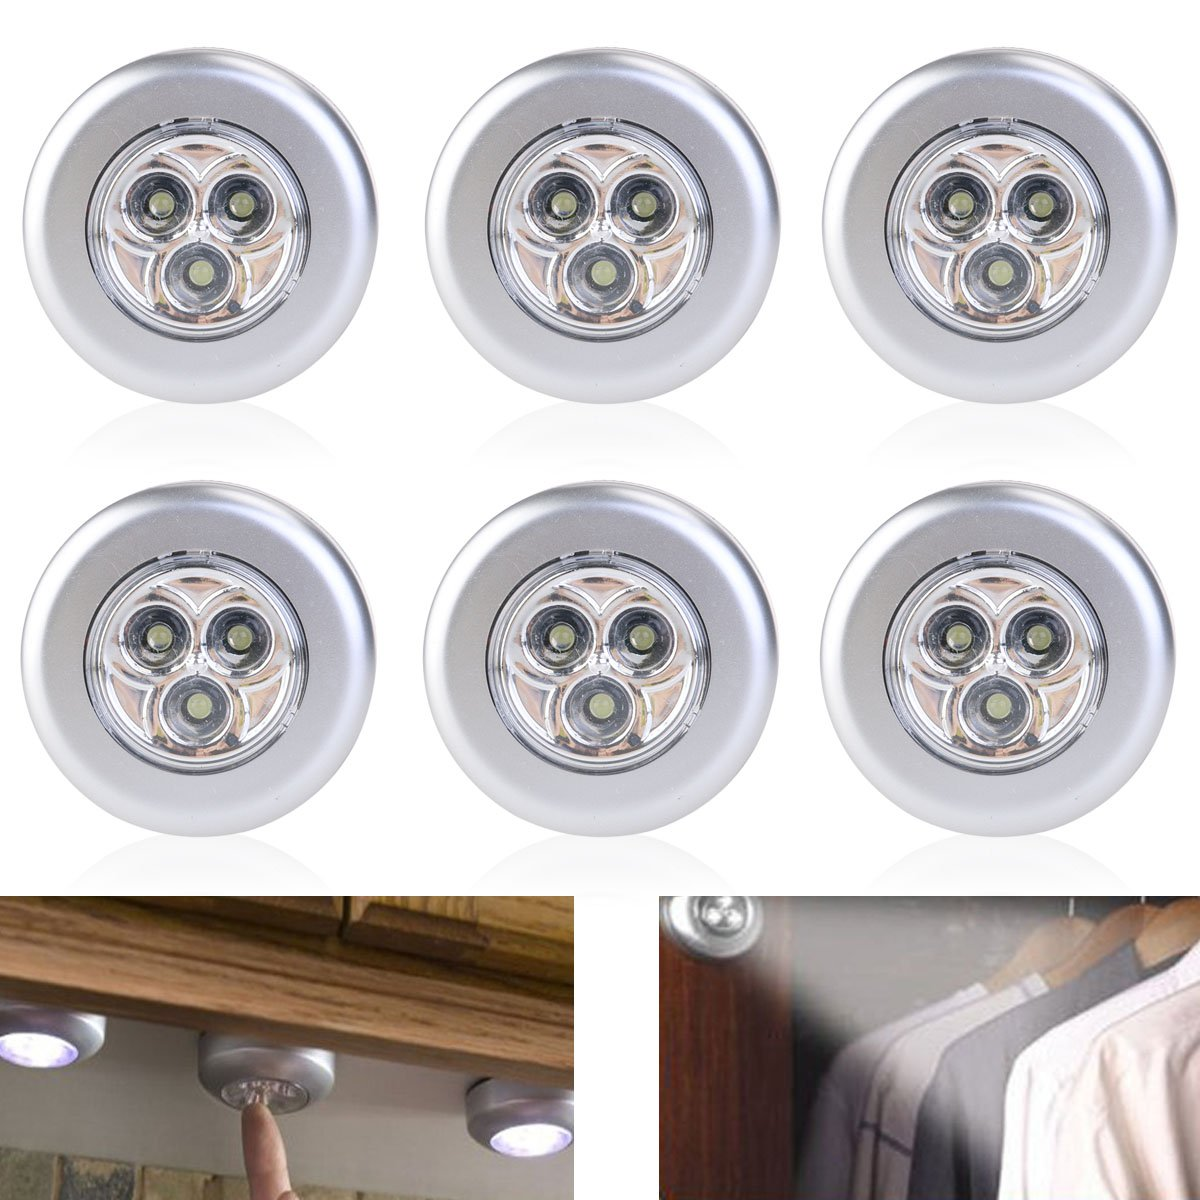 Tinksky Set of 6 Click Push LED Lamp Night Light Lamps Battery ...